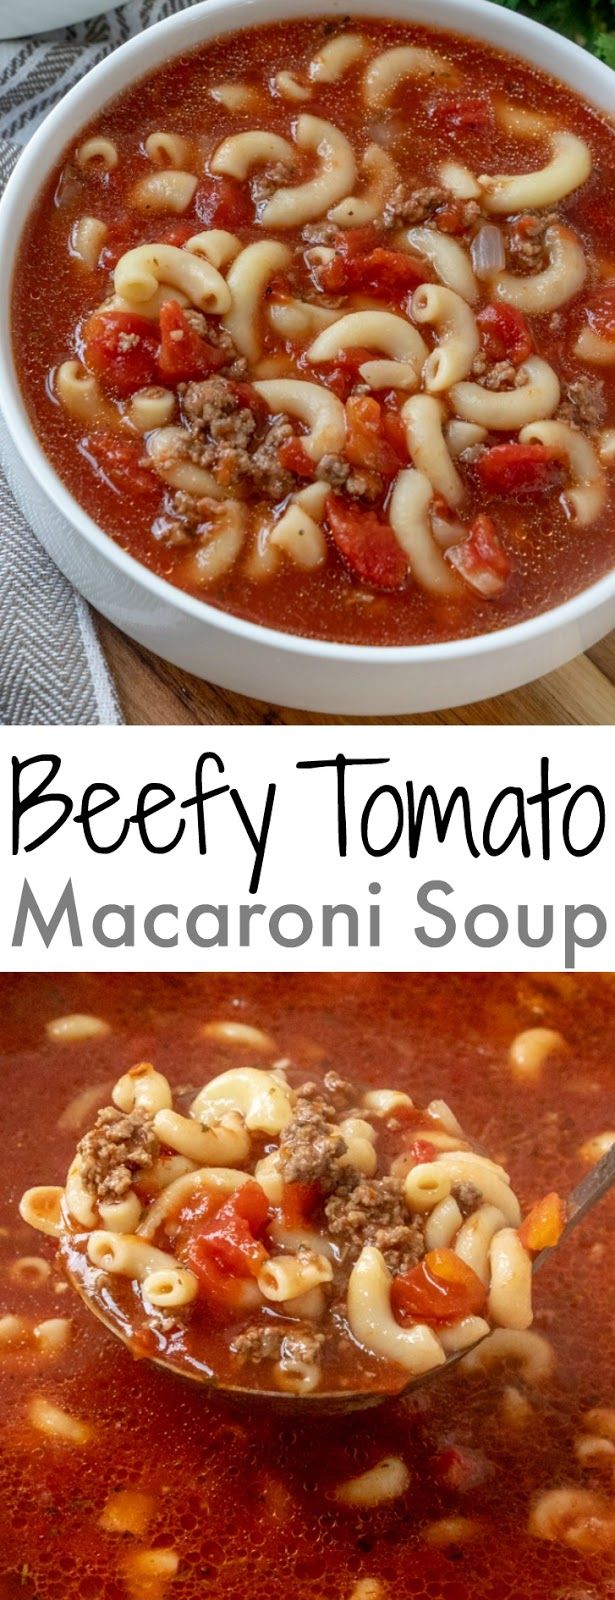 This ground beef and tomato soup is pure comfort food just like Grandma used to make! It's easy, ready in 30 minutes and SO delicious! It's family friendly and affordable. Serve with a salad, sandwich or a chunk of crusty bread!